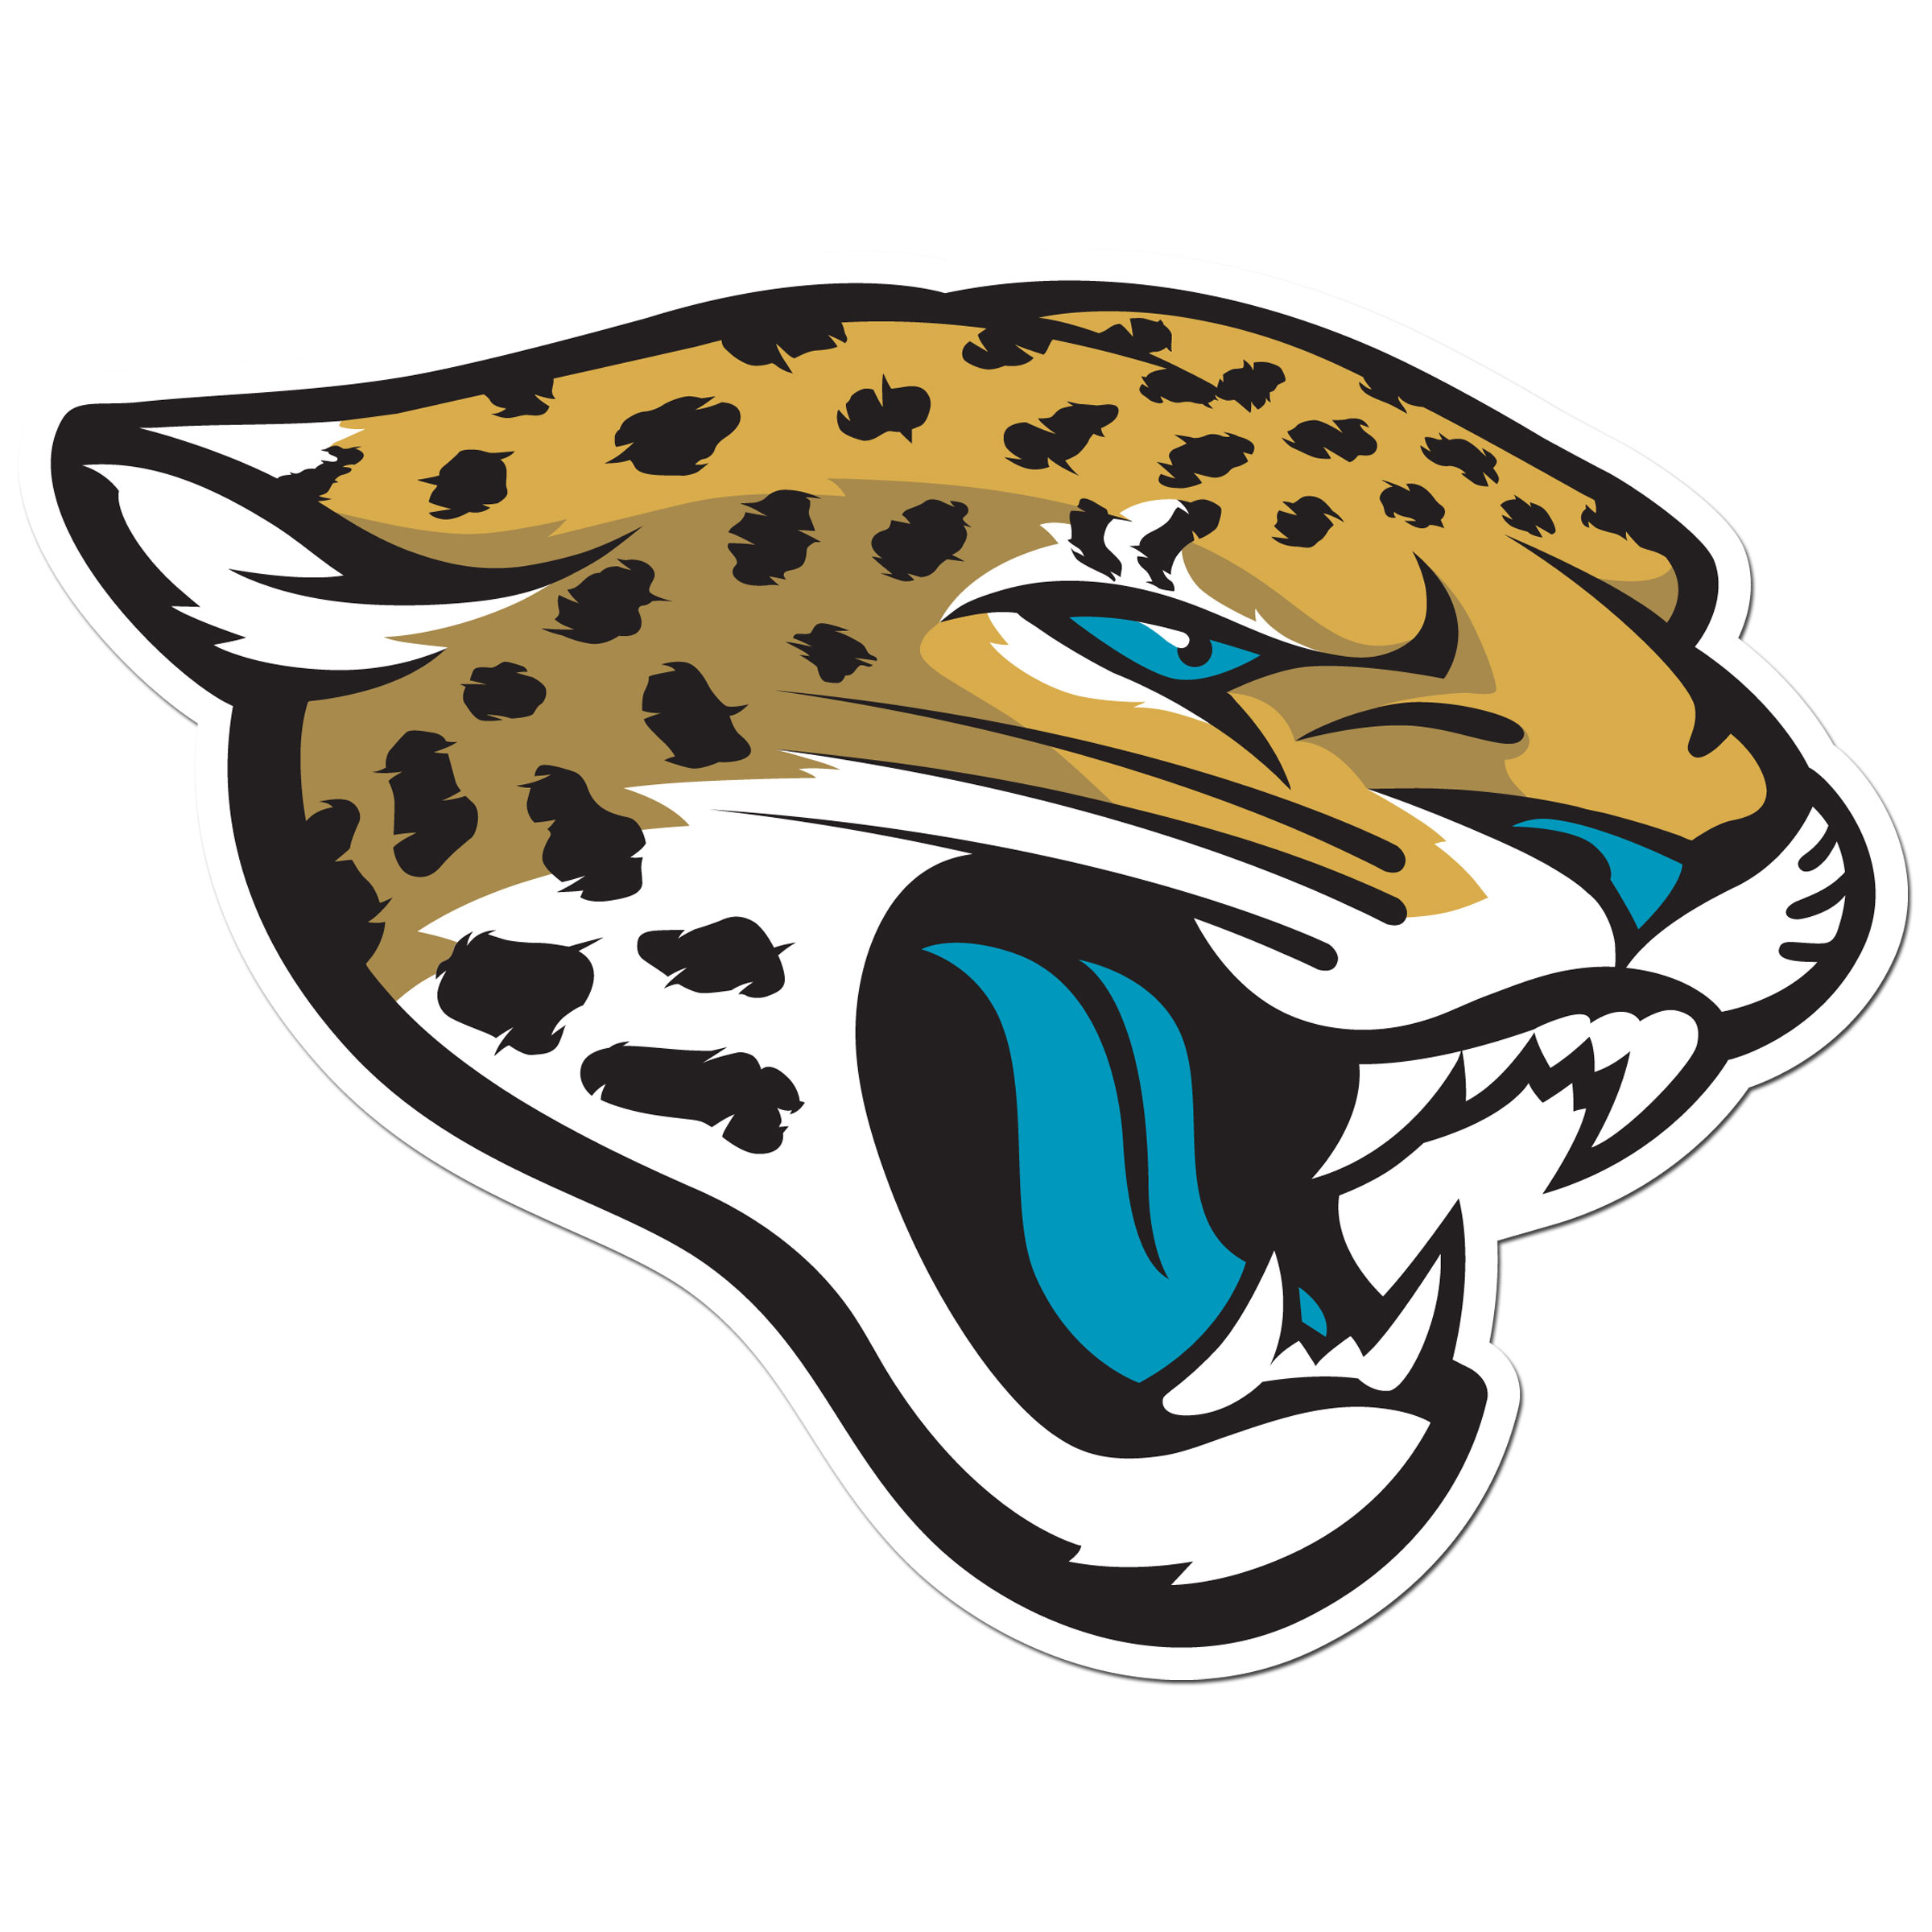 Jacksonville Jaguars 8 inch Auto Decal - This bold, 8 inch Jacksonville Jaguars is a great way to show off your team pride! The low tack vinyl decal is easily positioned and adjusted to make sure you get that logo in just the right spot on your vehicle. Designed to be used on the outside of the window.